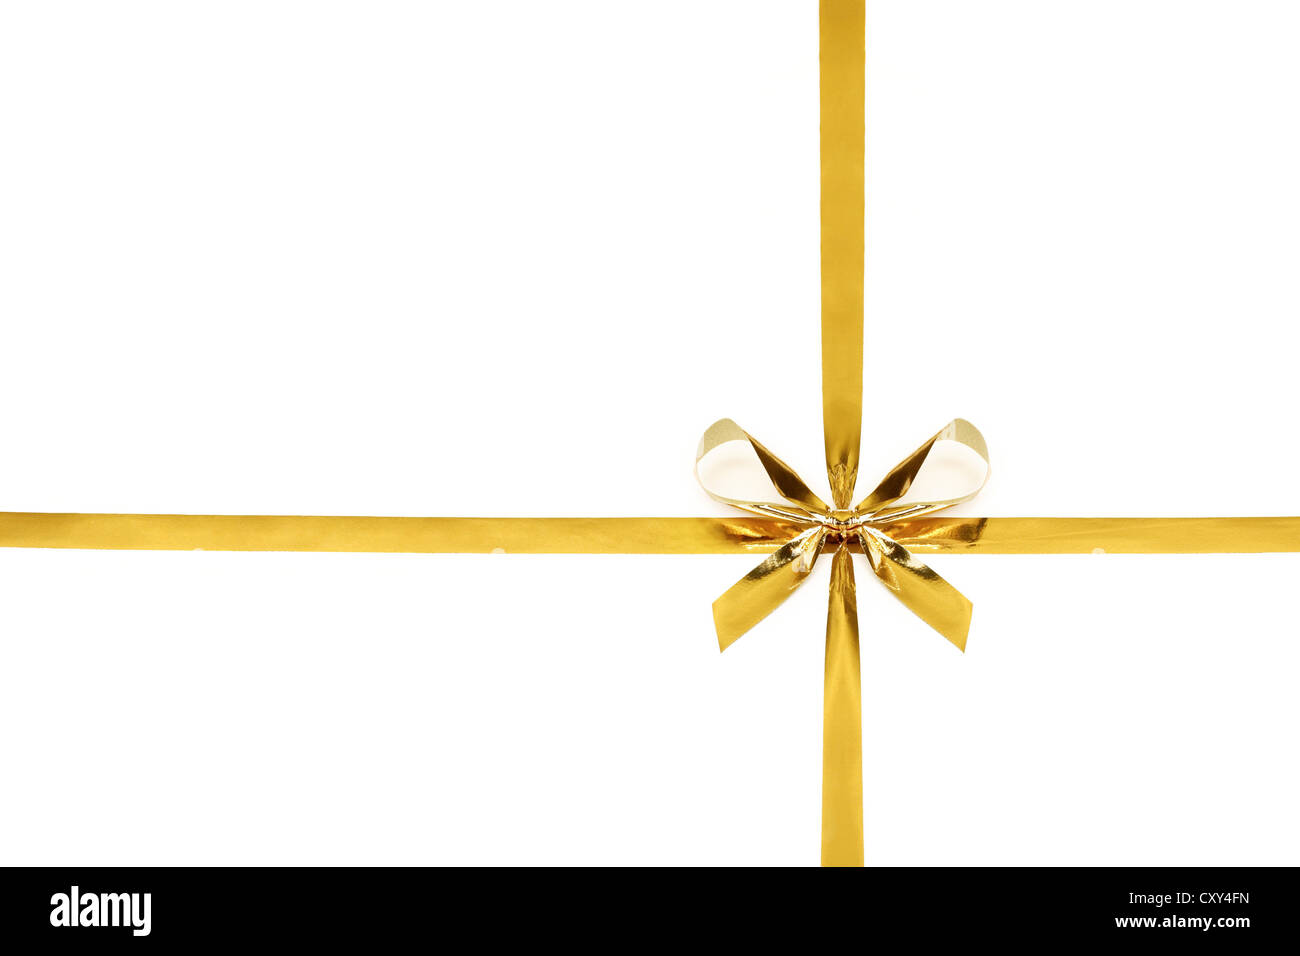 Gold ribbon tied in a bow - Stock Image